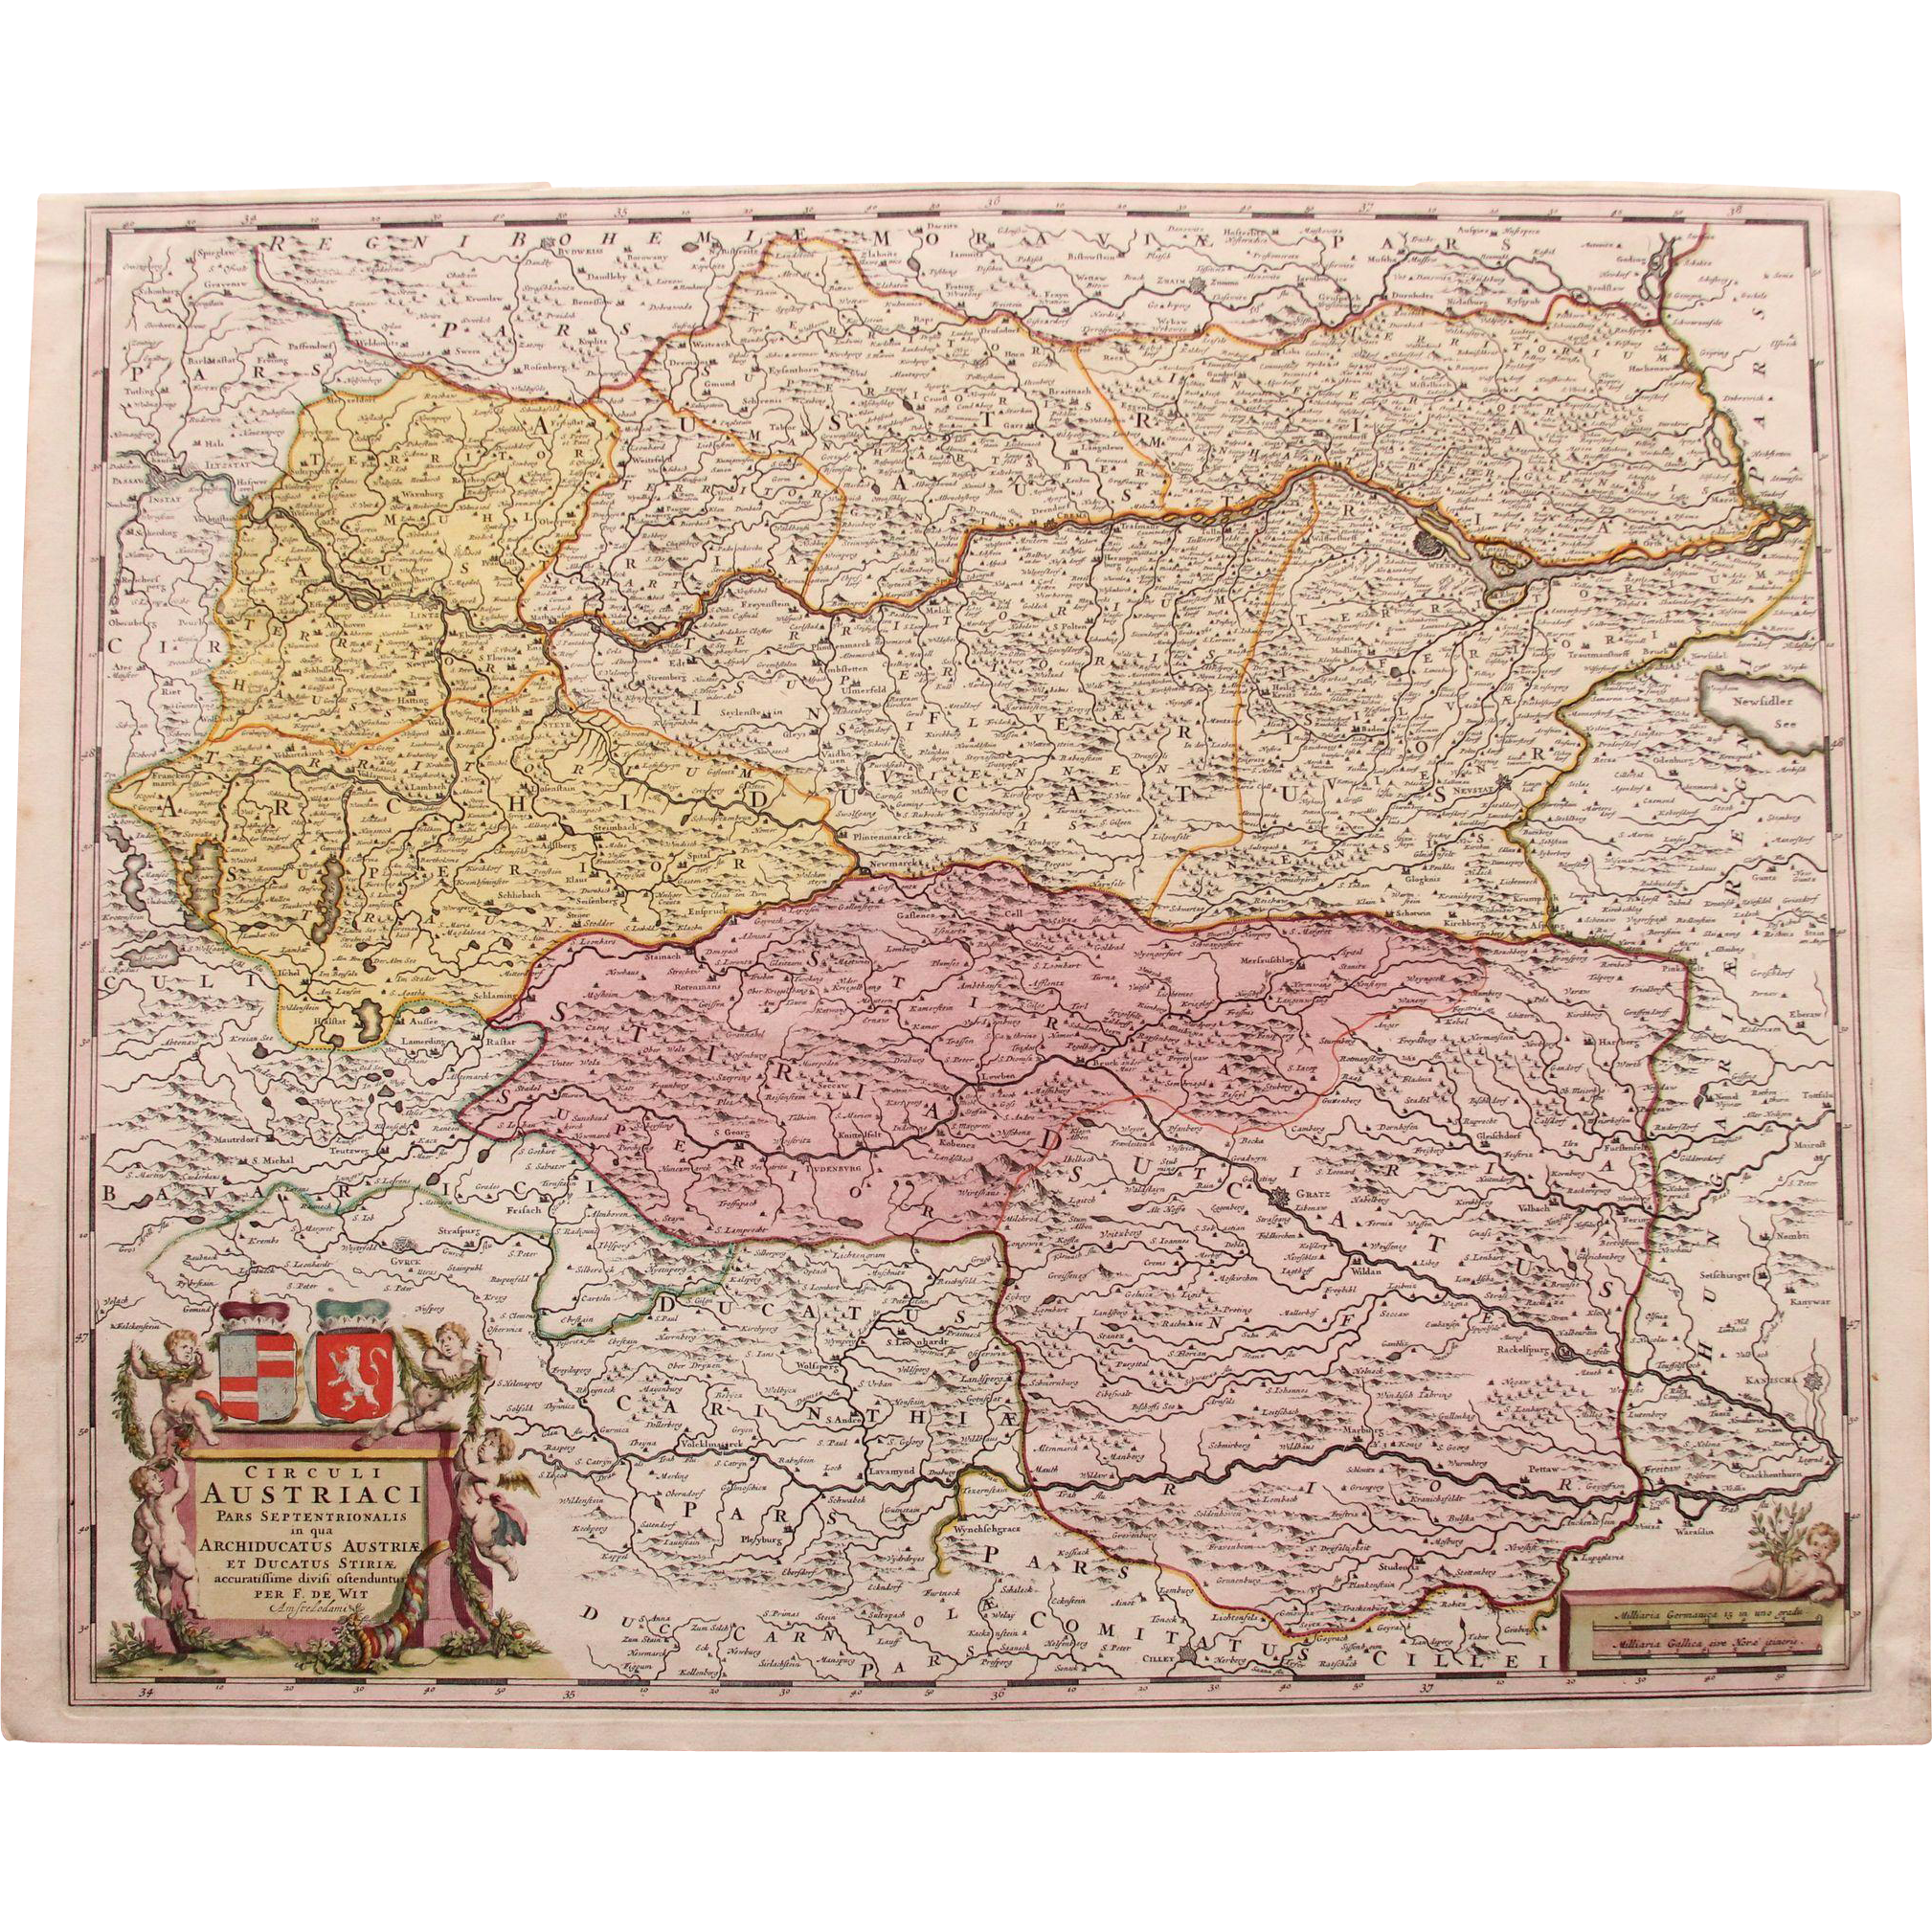 17th Century Antique Baroque Map of Northern Austria by Frederick de